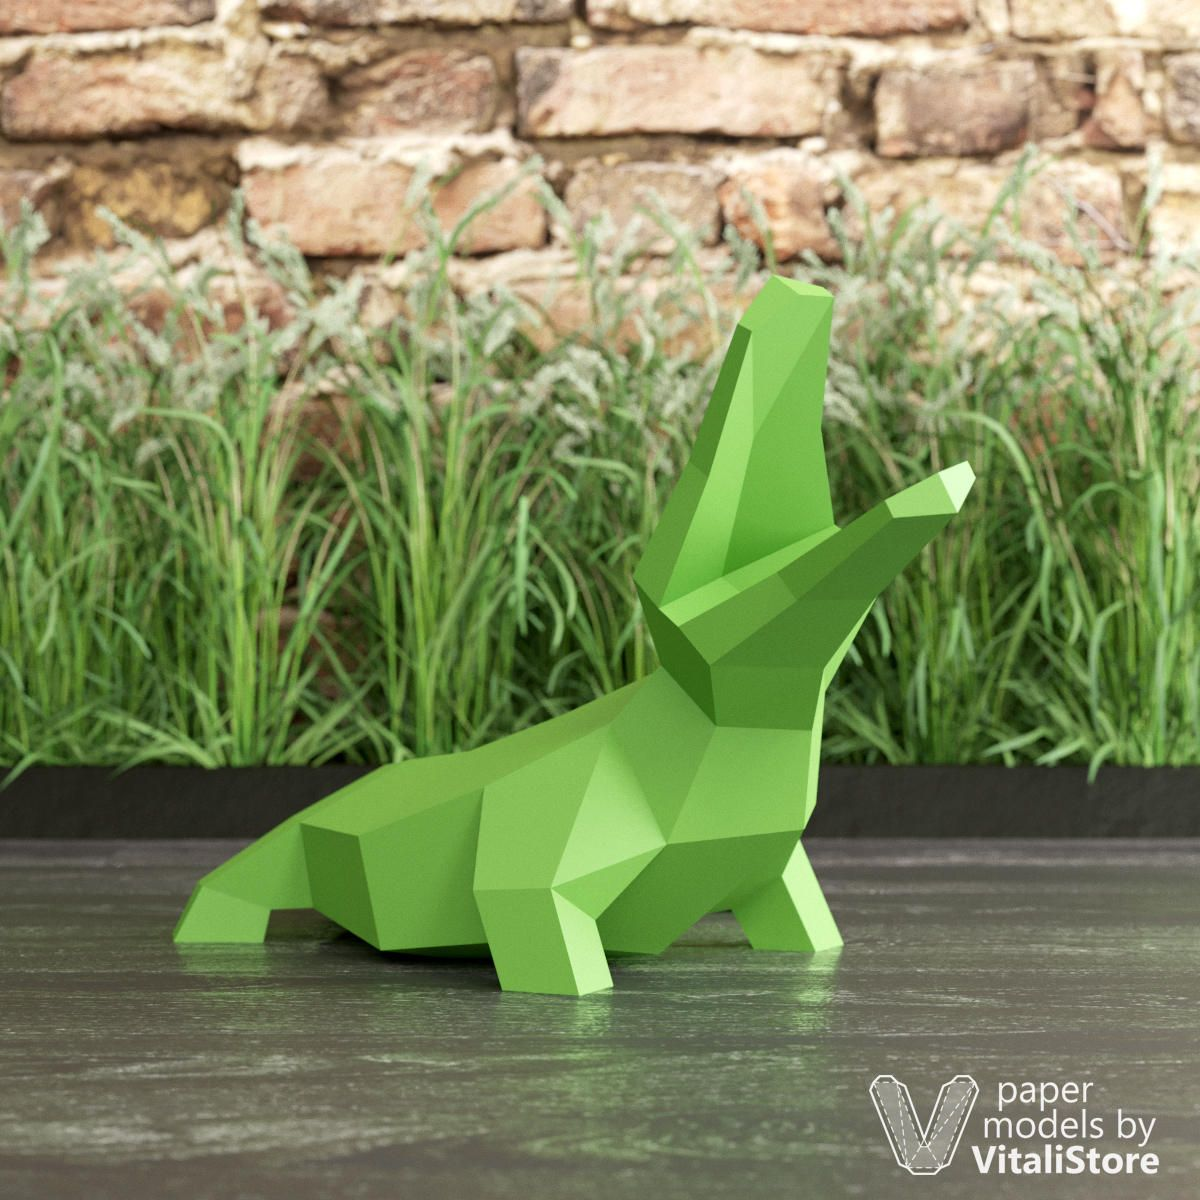 Alligator Papercraft, 3D Papercraft Crocodile, DIY Home